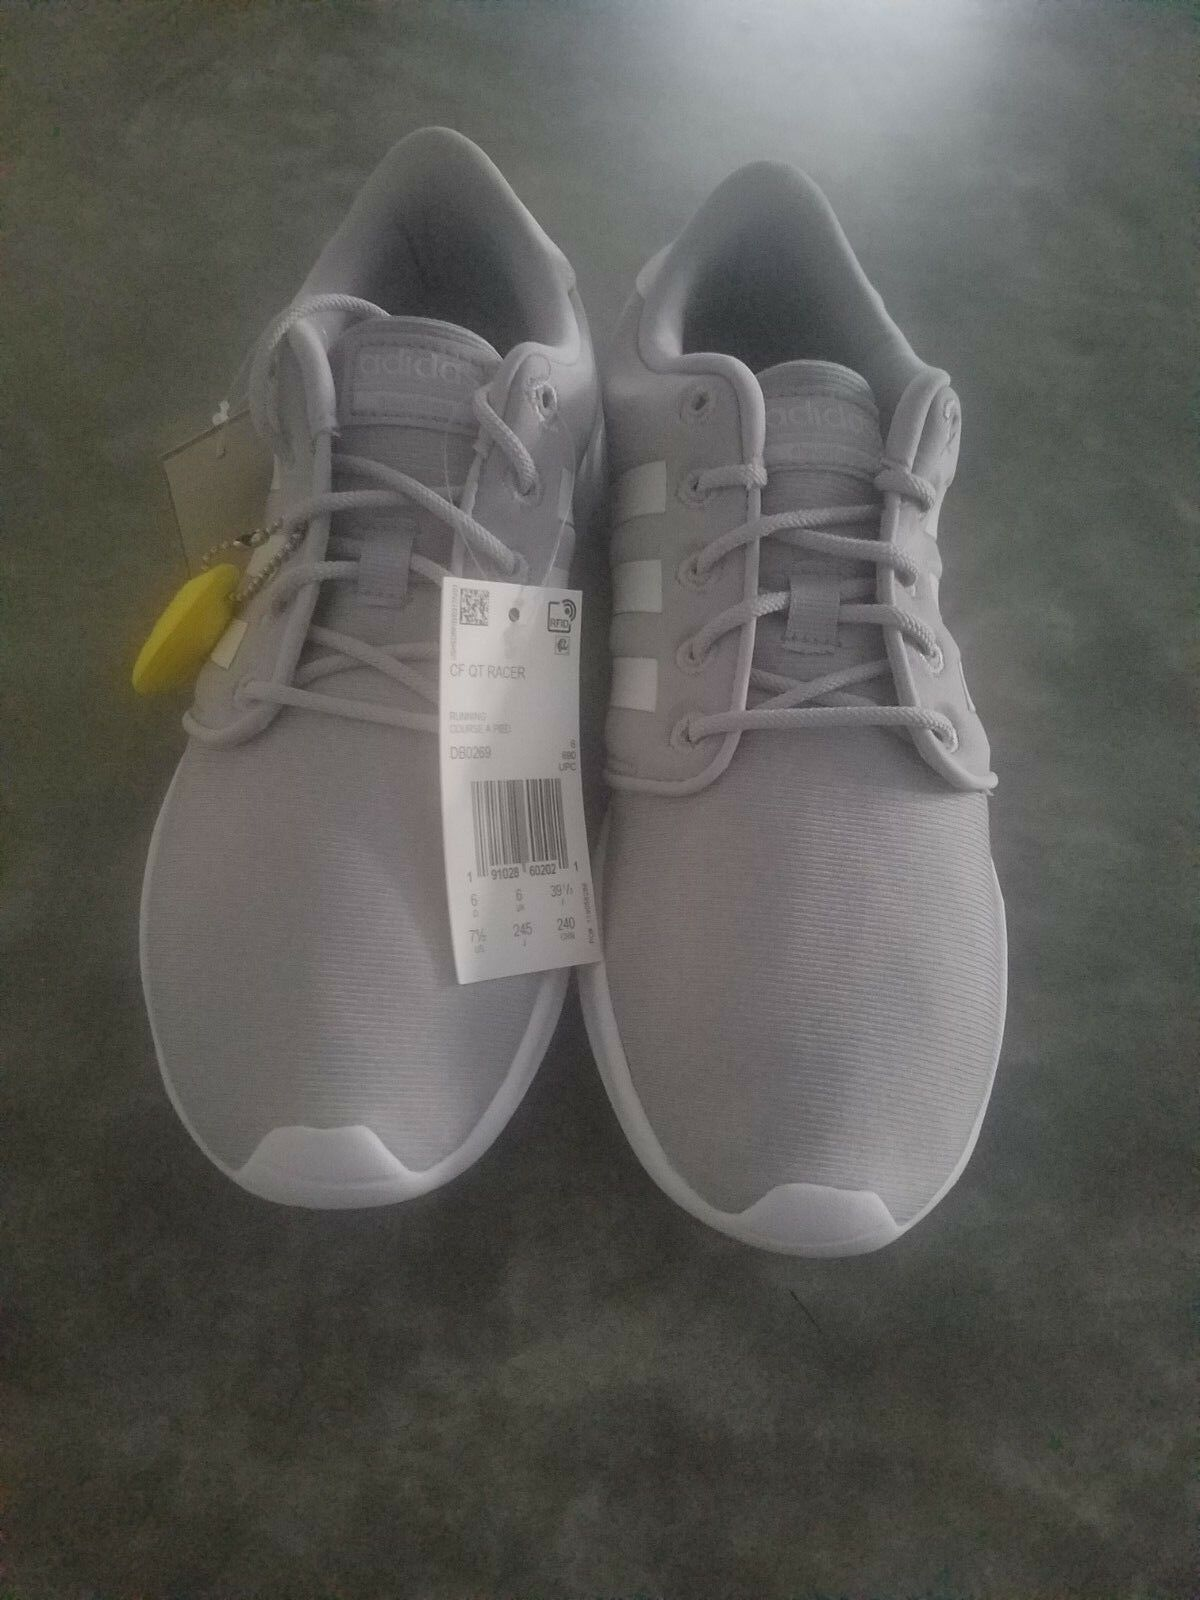 Adidas Women's Size 7.5 Cloadfoam  Running shoes BNWT